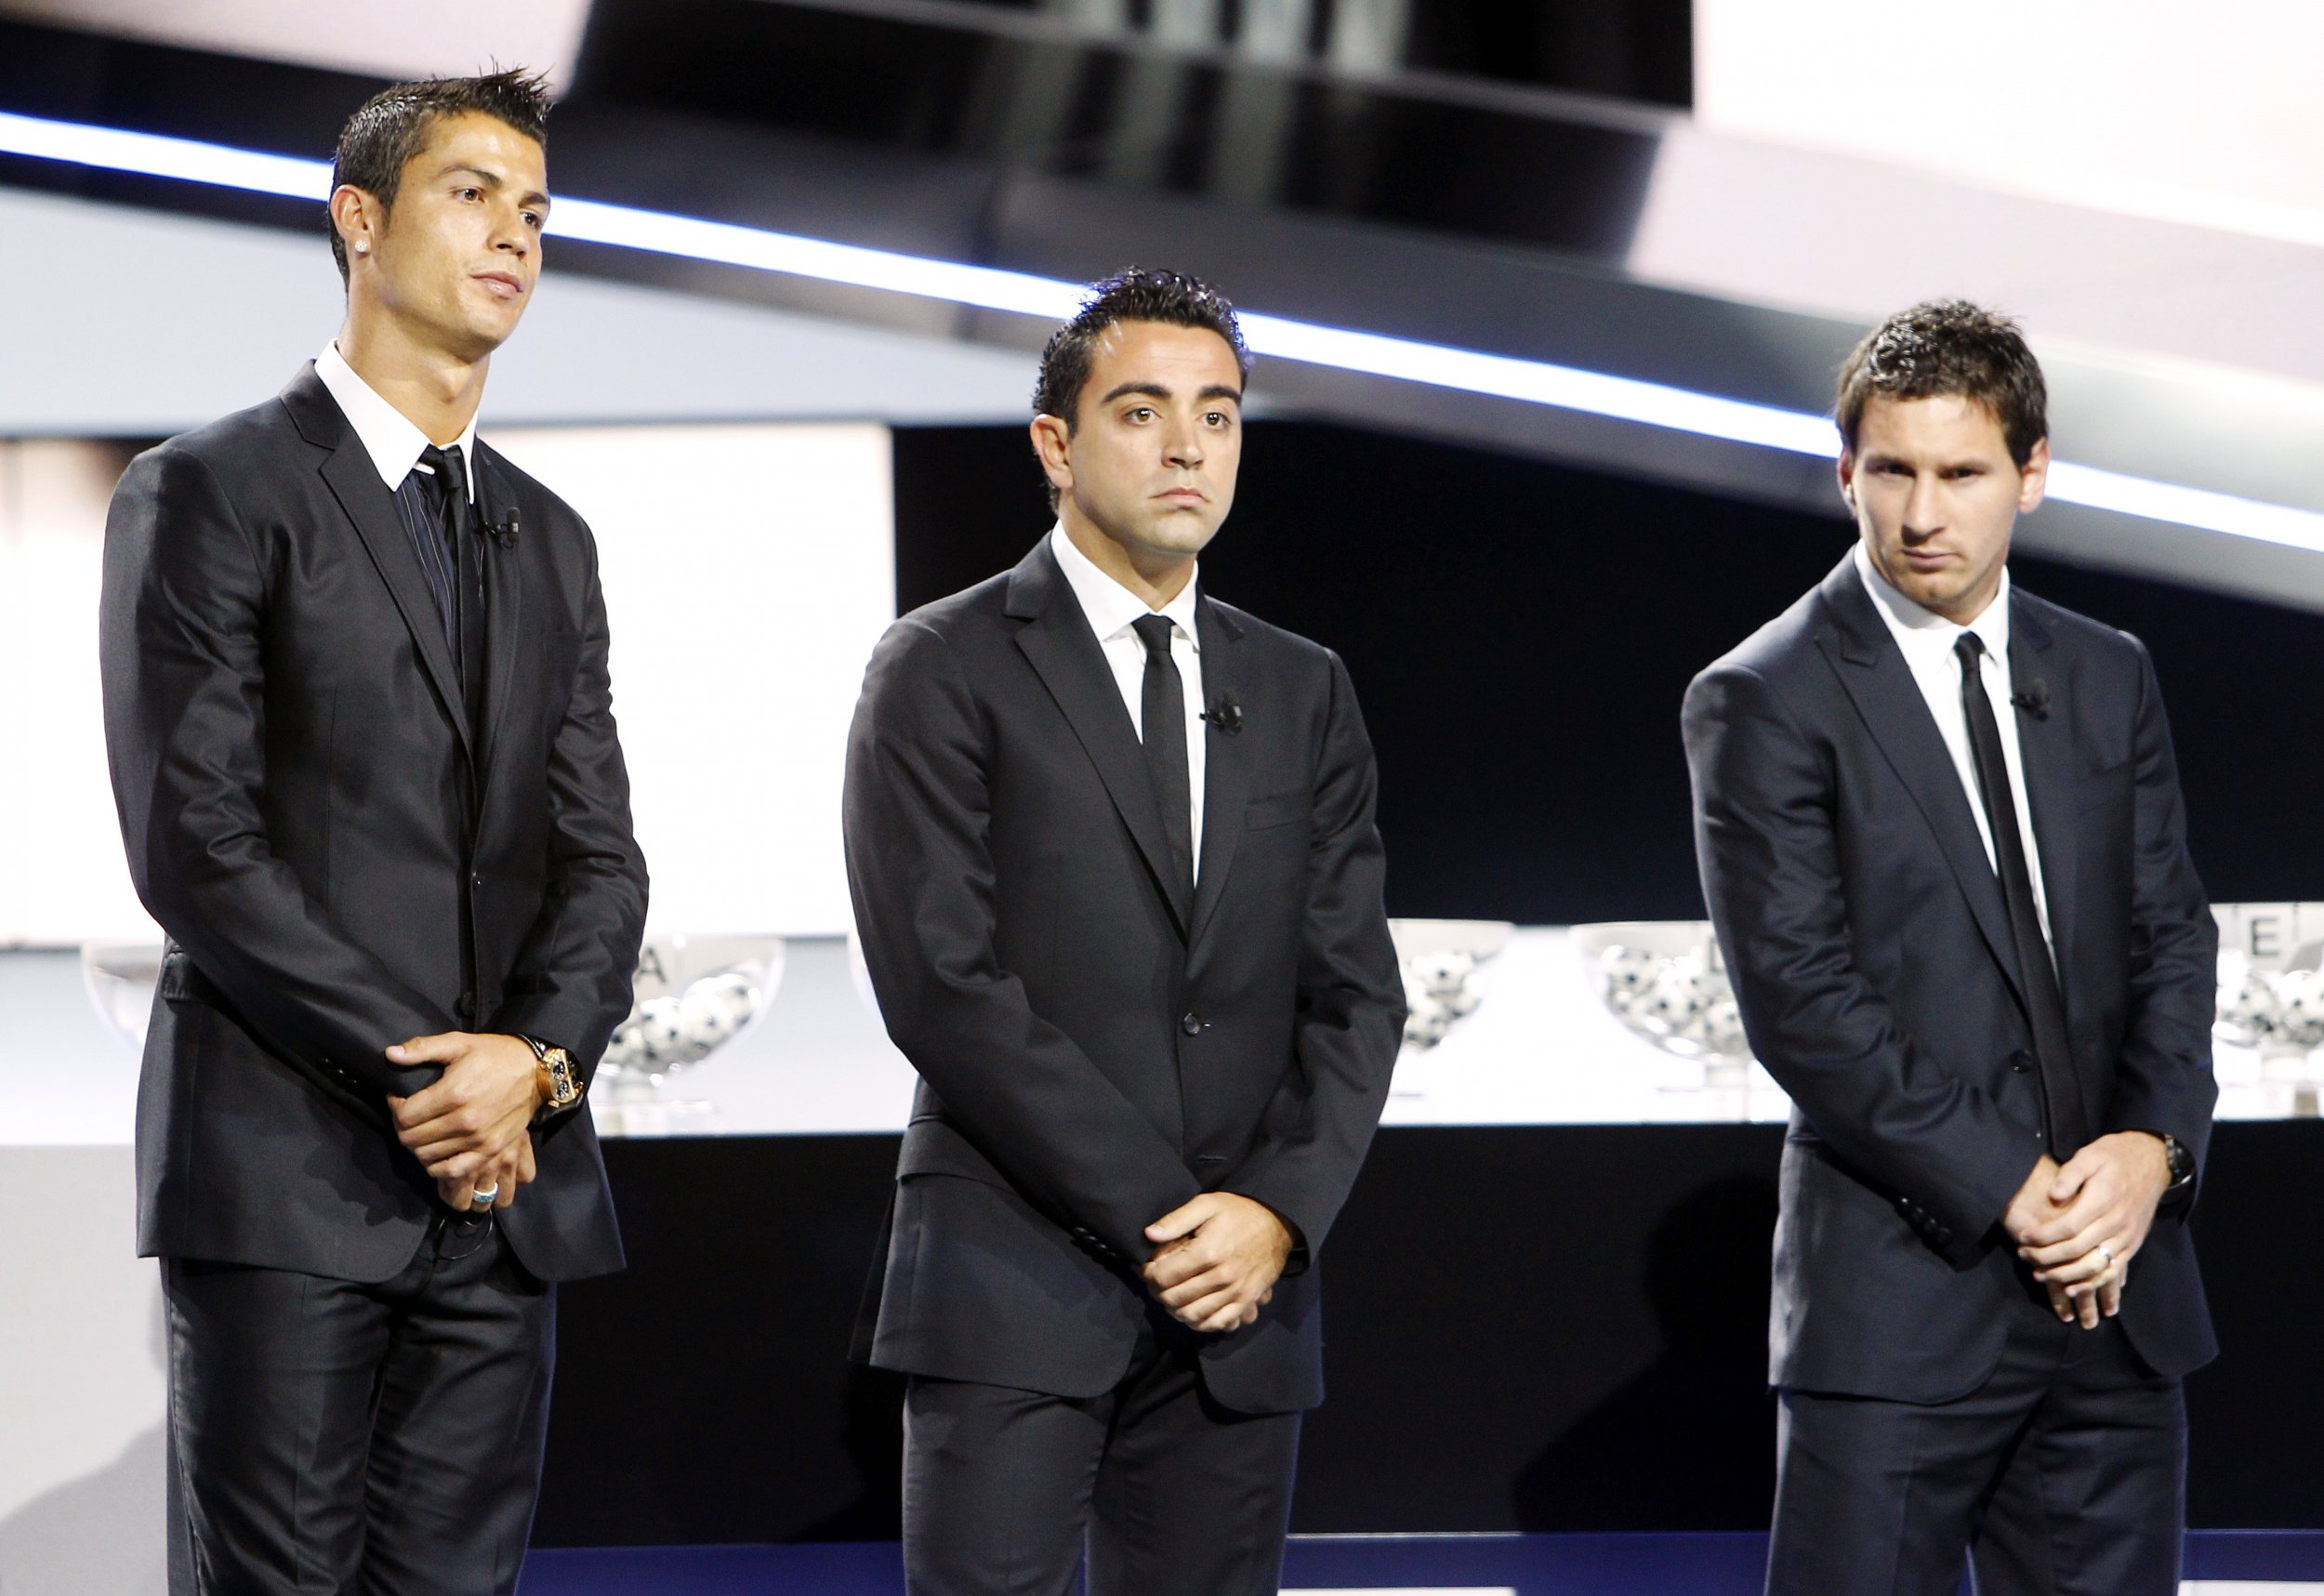 Cristiano Ronaldo, left, Xavi Hernandez, centre, and Lionel Messi in Monaco, August 2011.